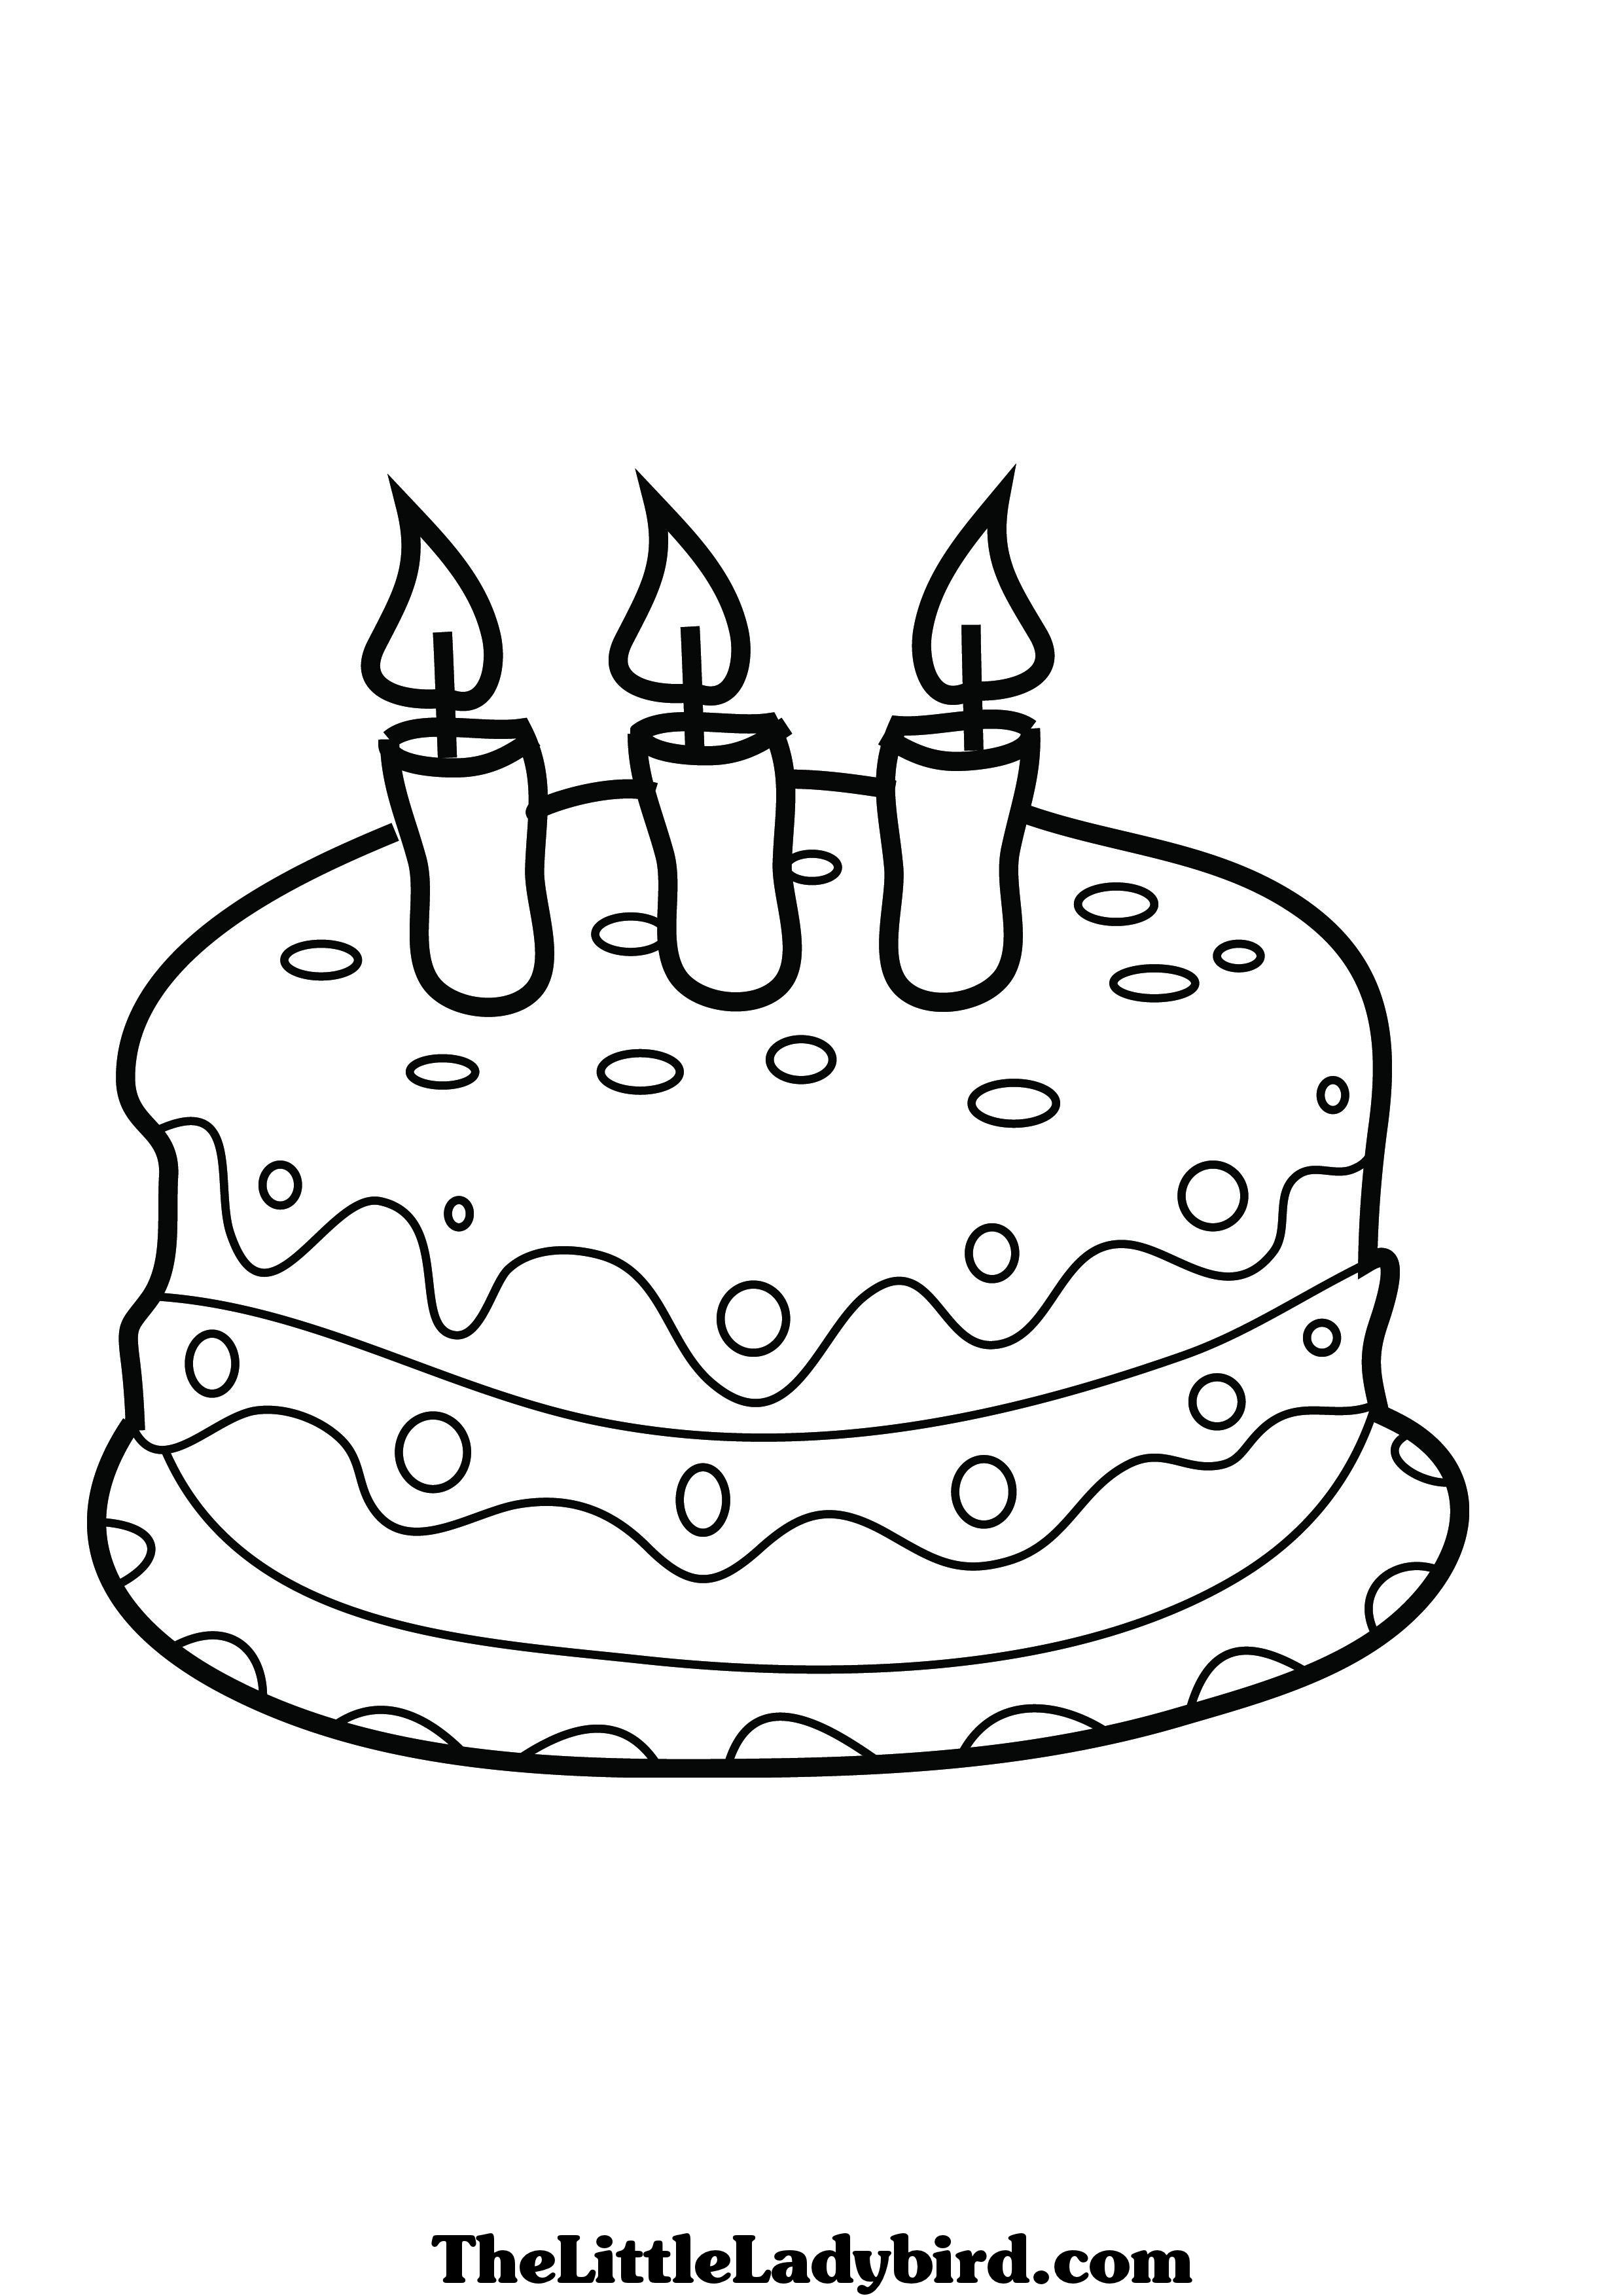 2480x3508 Cake Coloring Page Auto Market Me With Pages Of Cakes Remodel